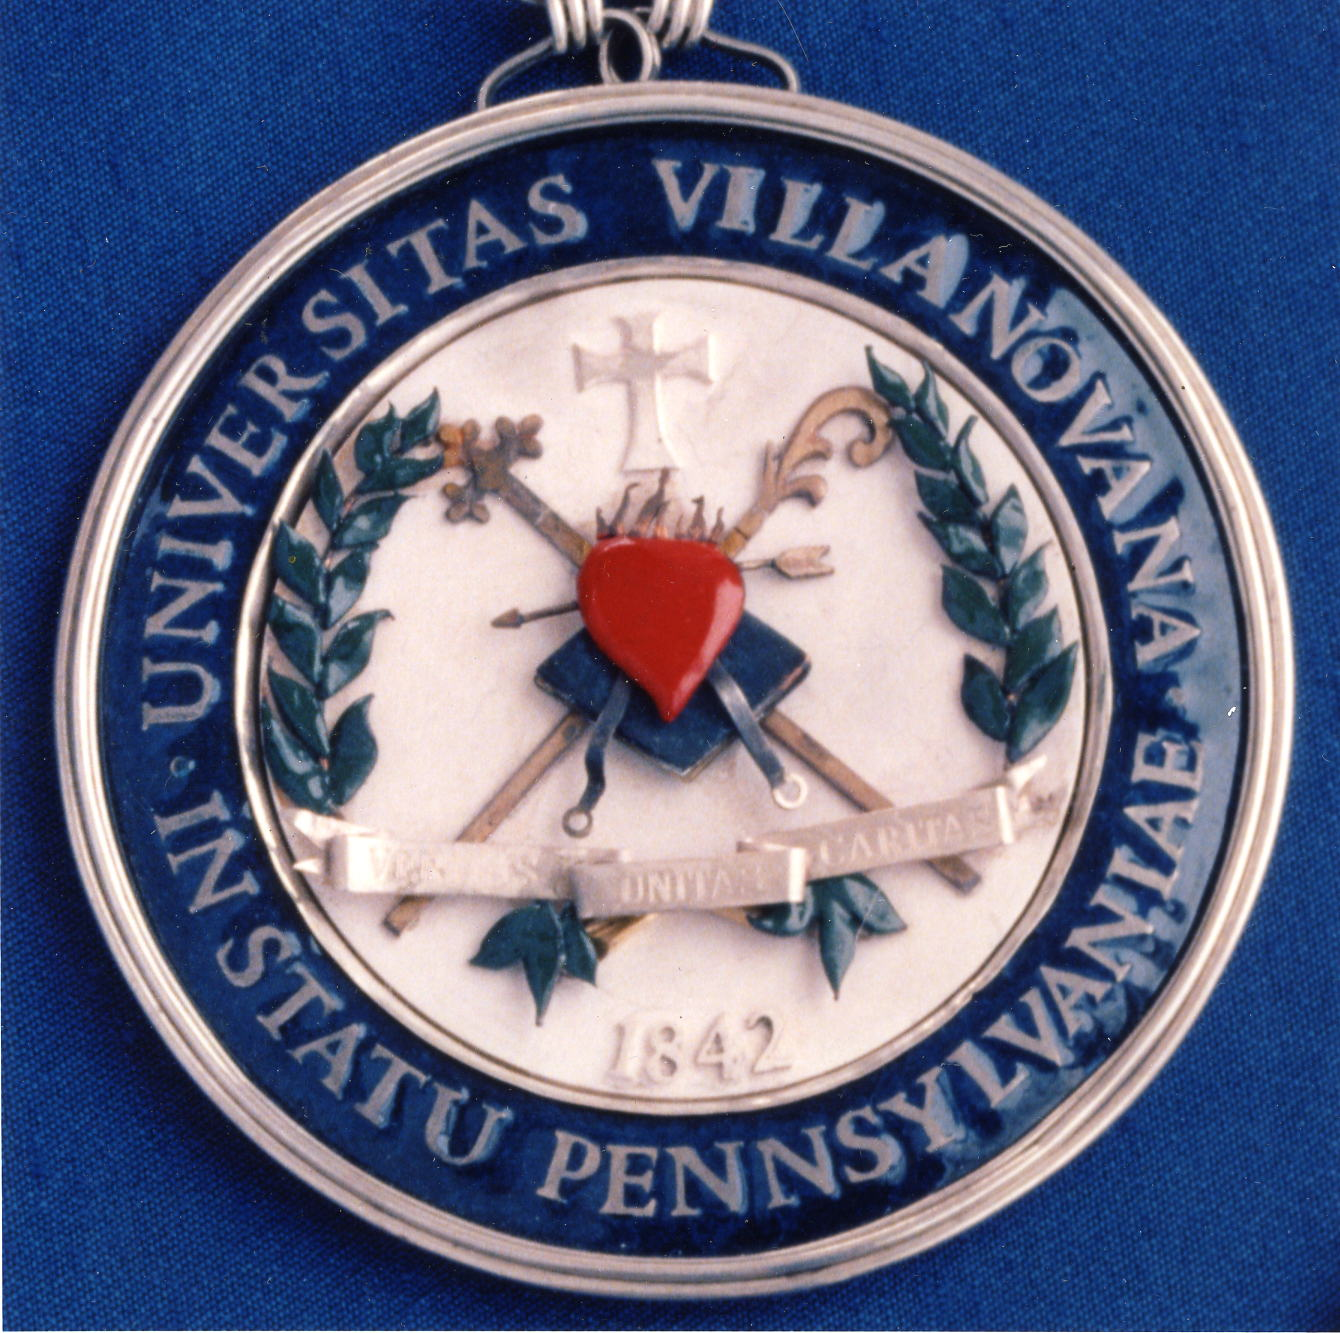 Presidential medallion, Villanova University